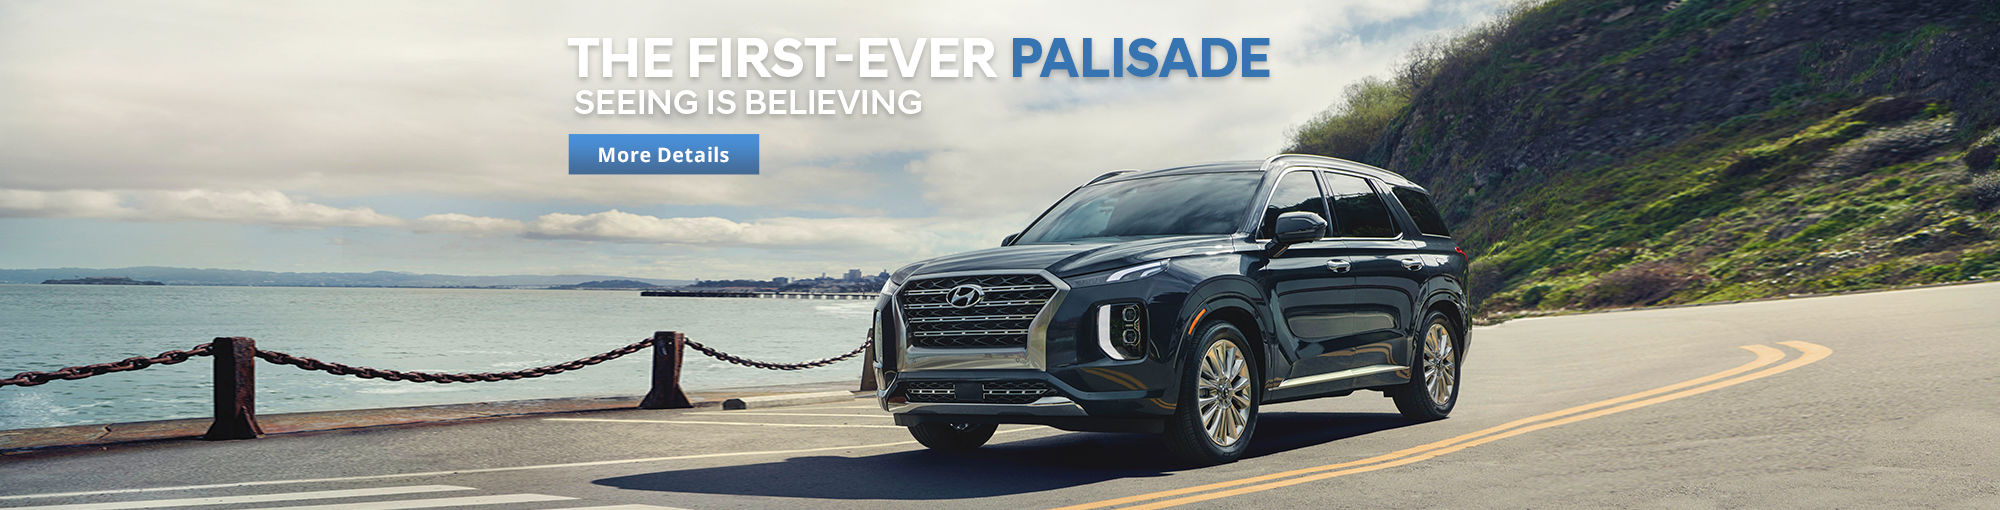 Introducing the first-ever PALISADE